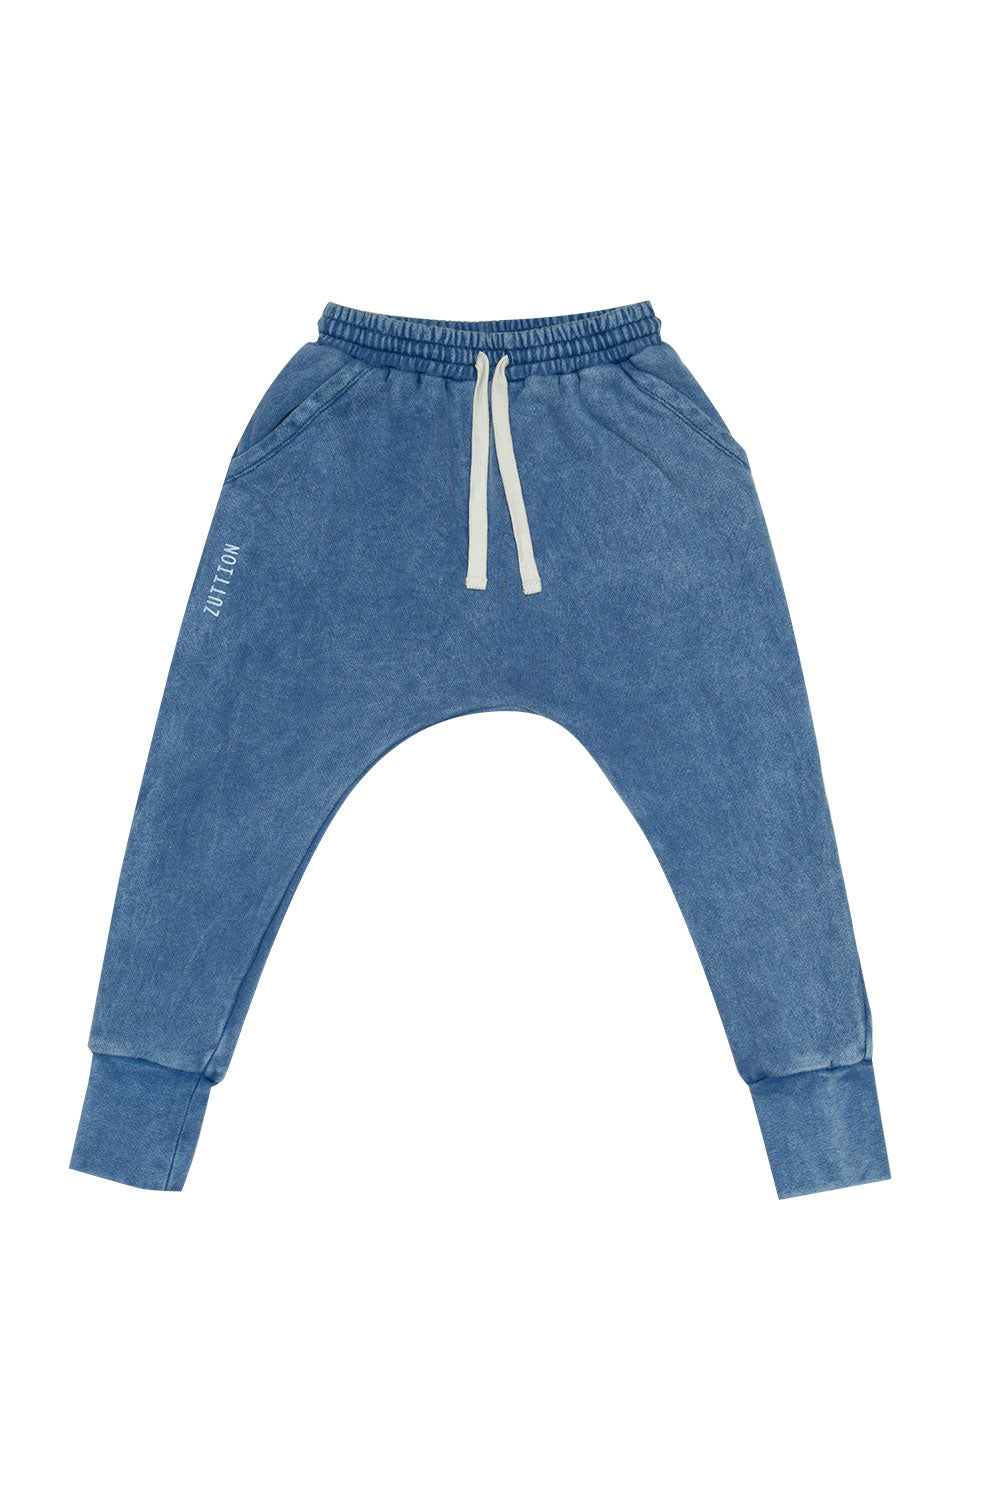 LOW CROTCH TRACKIE PANT NAVY